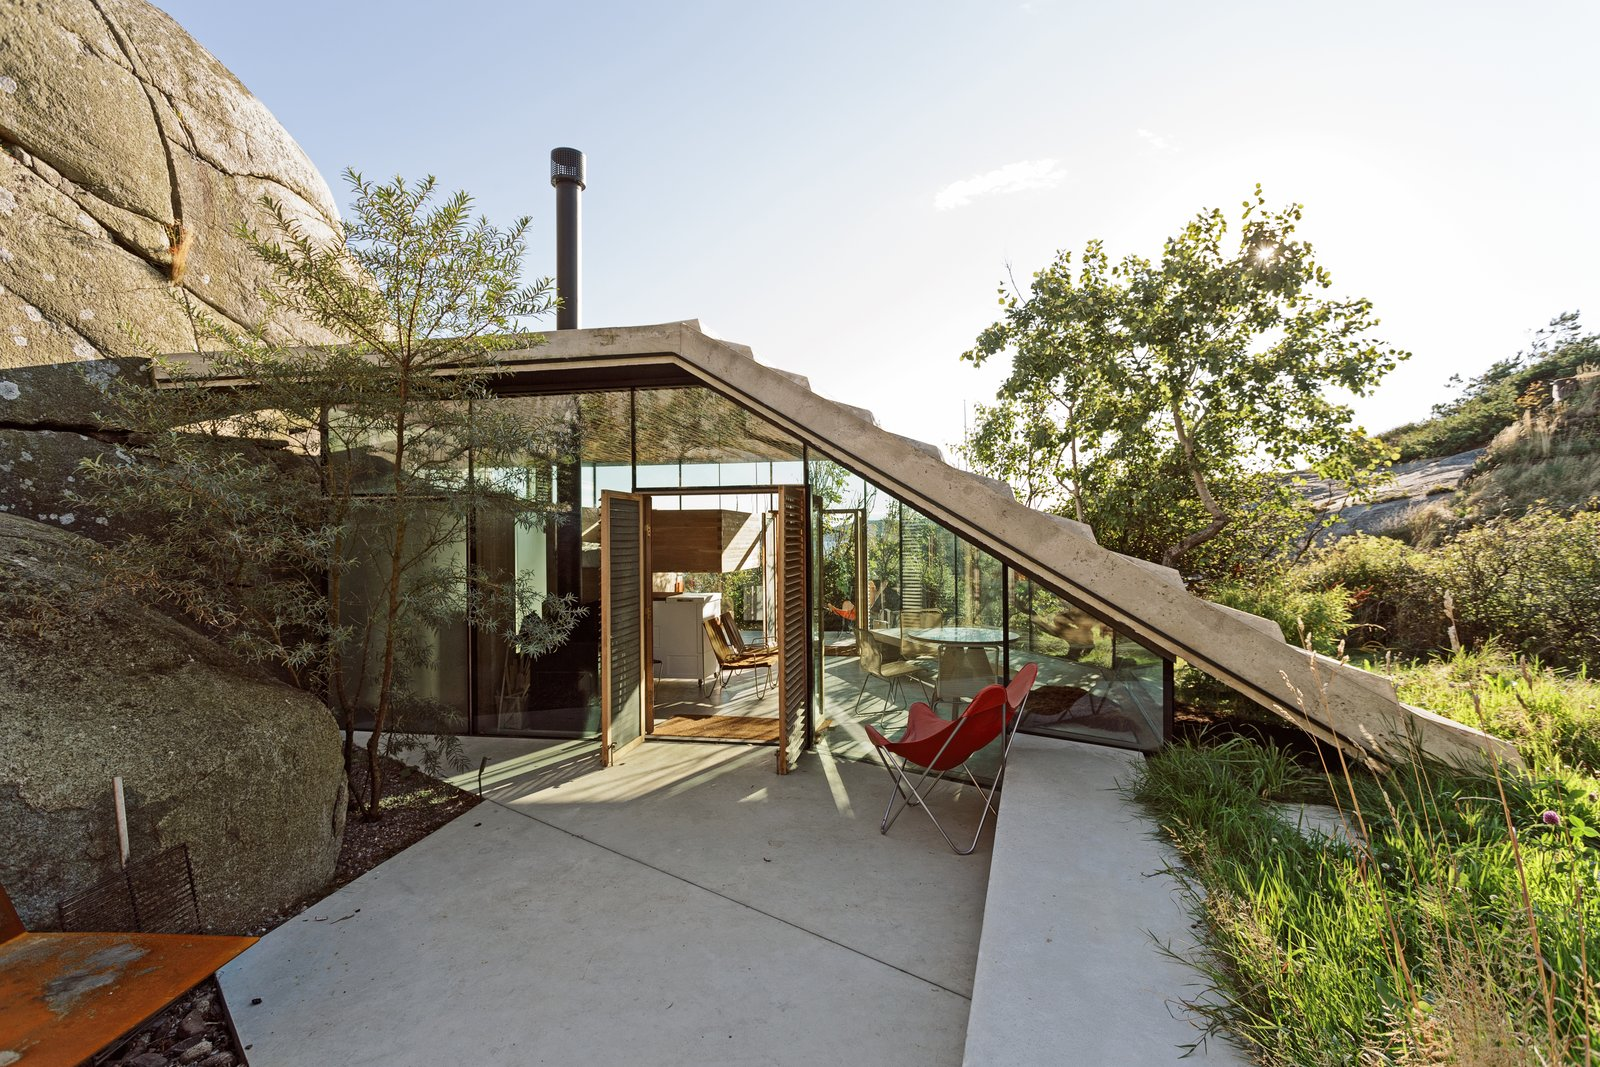 Outdoor, Concrete, Shrubs, Slope, Boulders, and Trees  Outdoor Boulders Trees Photos from This Norwegian Cabin's Roof Doubles as an Observation Deck